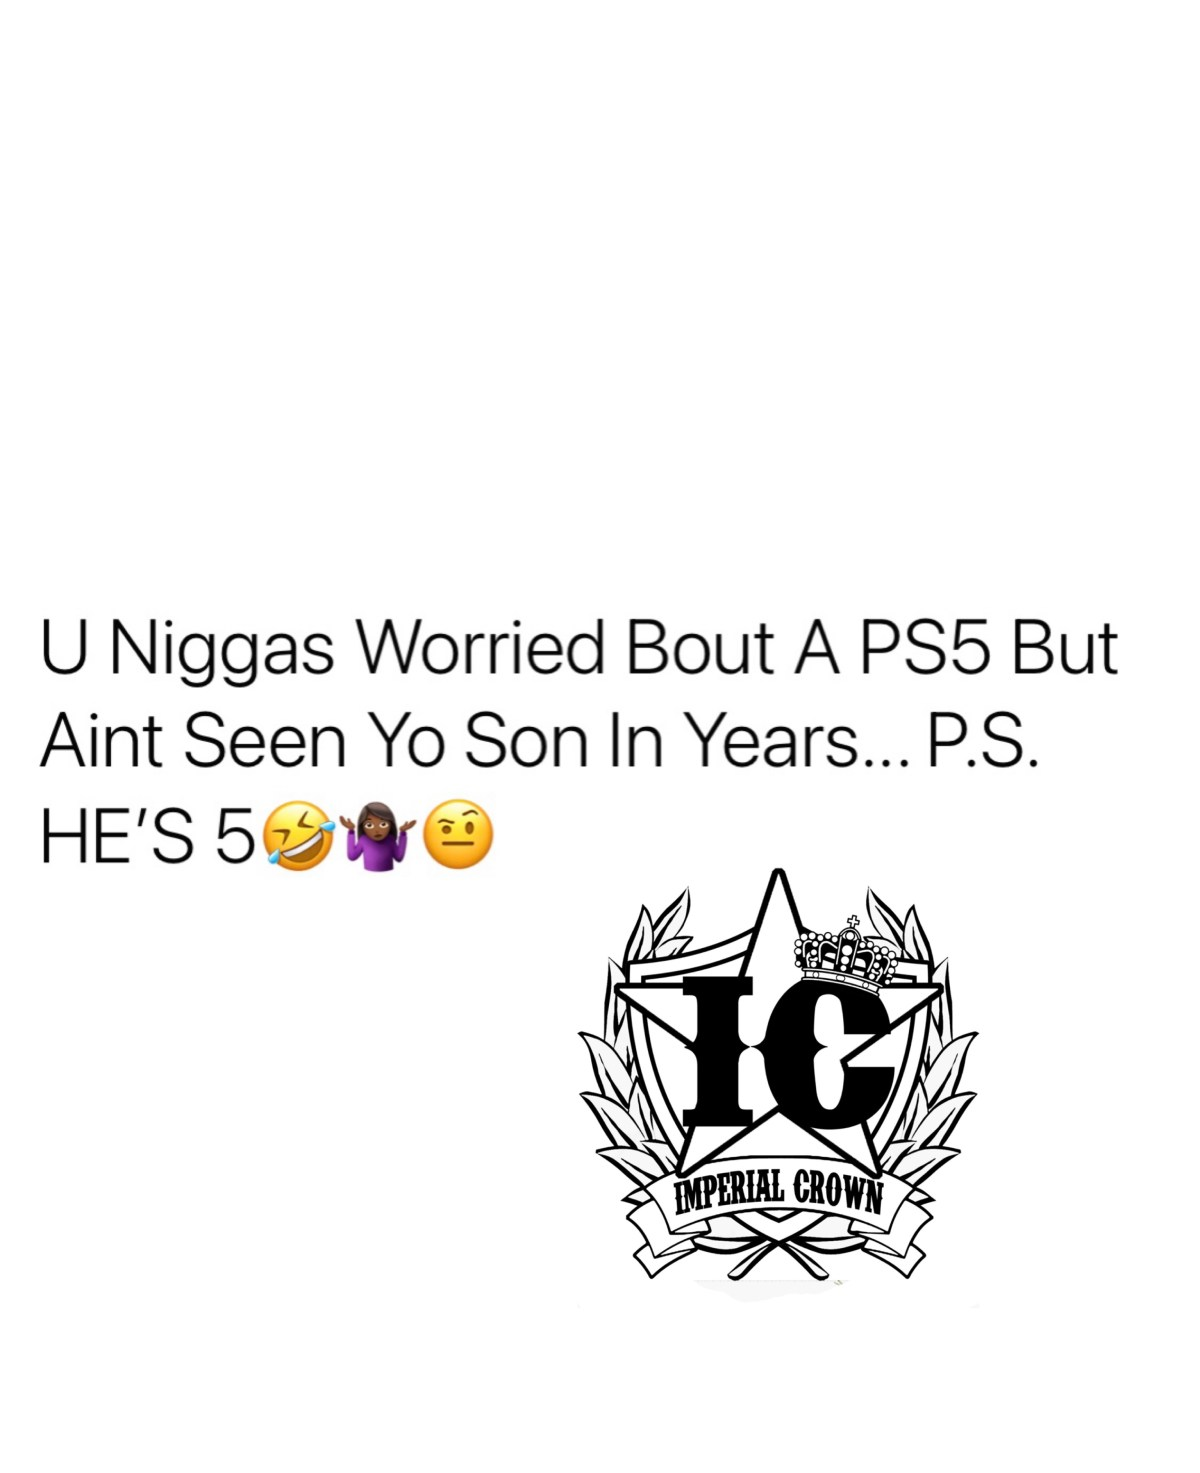 U niggas worried bout a PS5 but ain't seen yo son in years p.s. he's 5